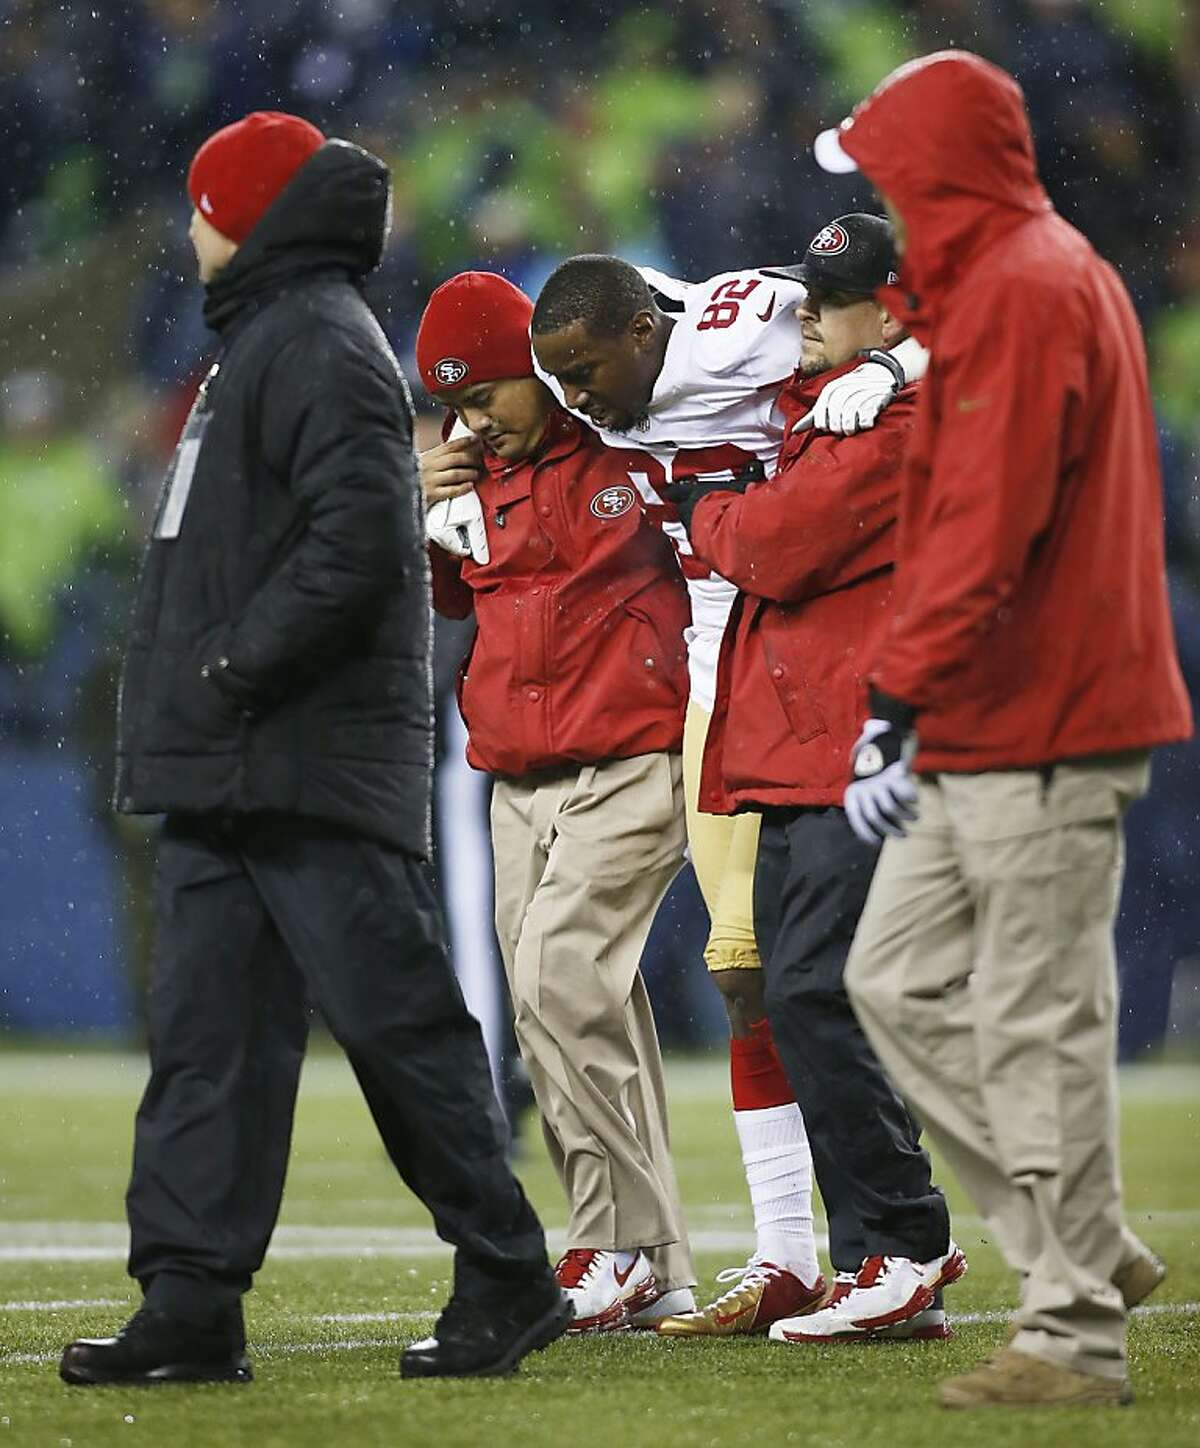 San Francisco 49ers Mario Manningham is helped off the field after an injury against the Seattle Seahawks in the second half of an NFL football game, Sunday, Dec. 23, 2012, in Seattle. (AP Photo/John Froschauer)